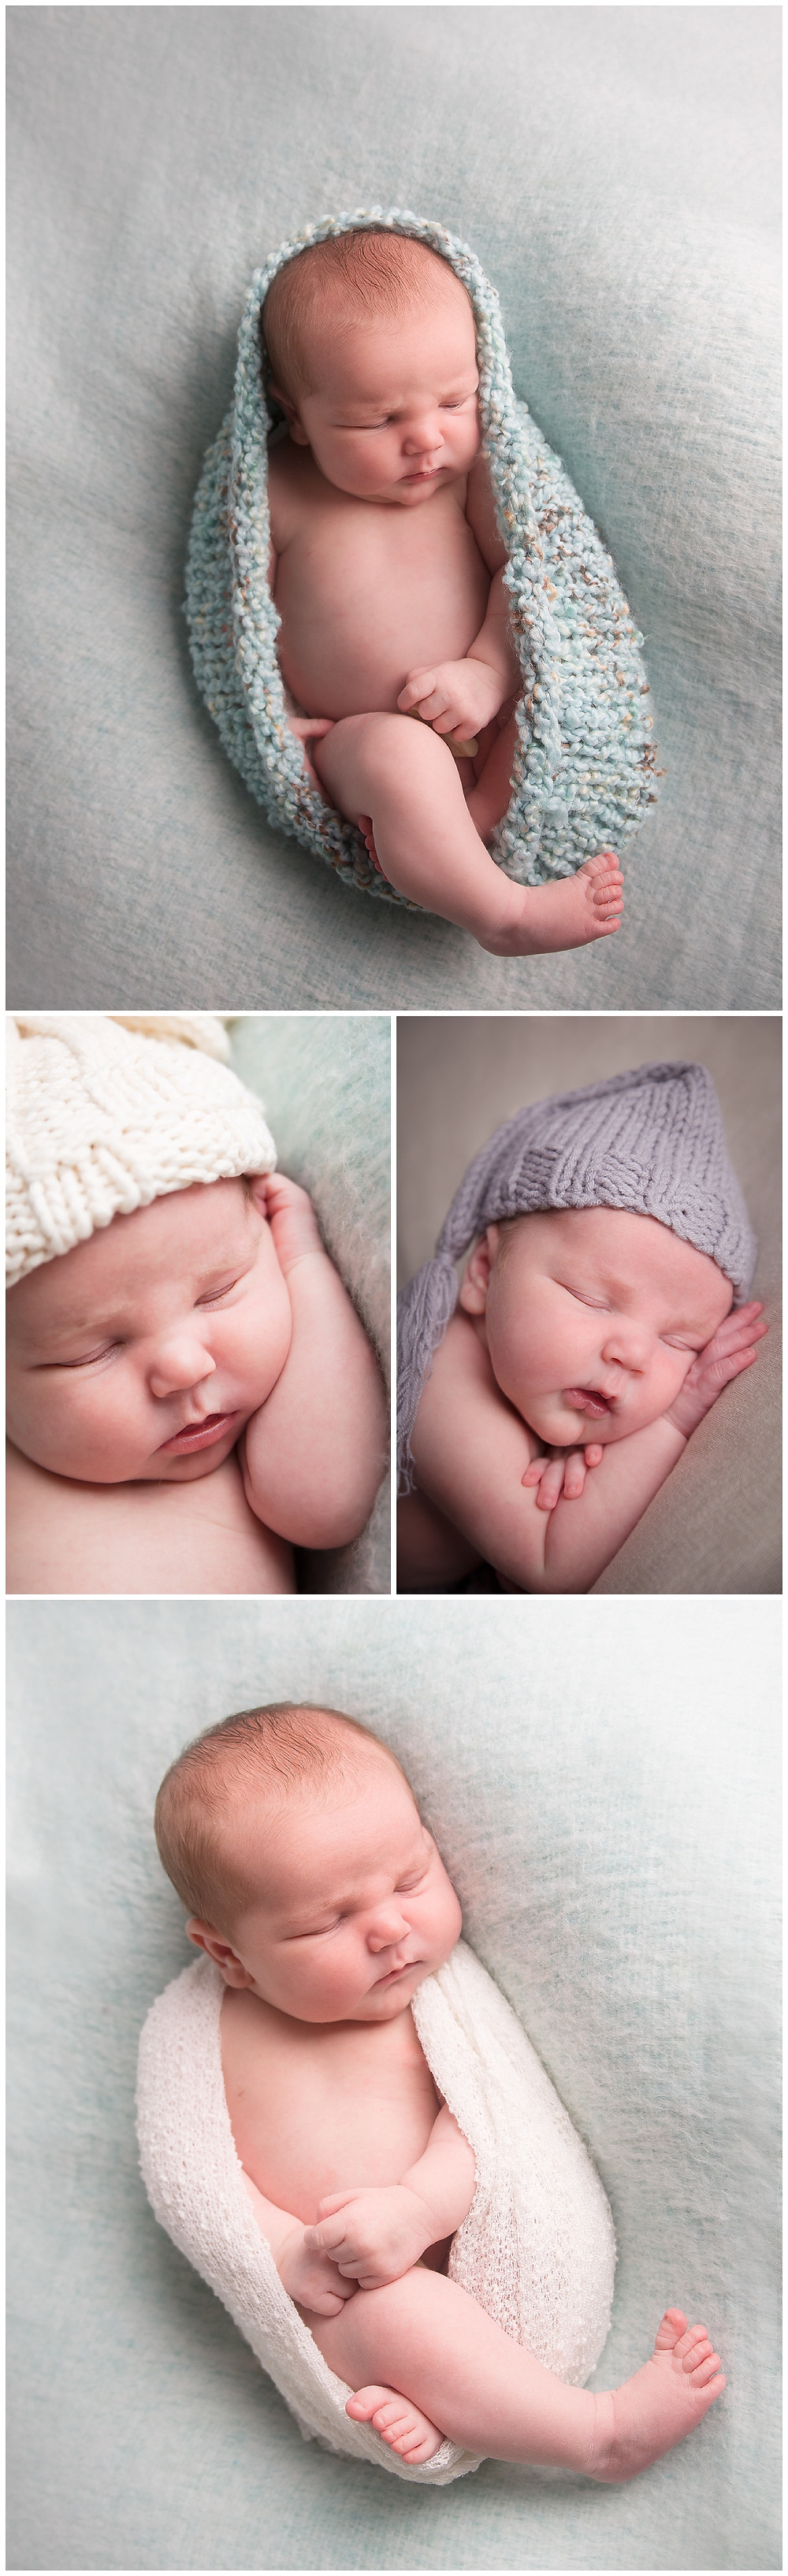 dallas newborn photographer, lexi meadows photography, baby boy pictures